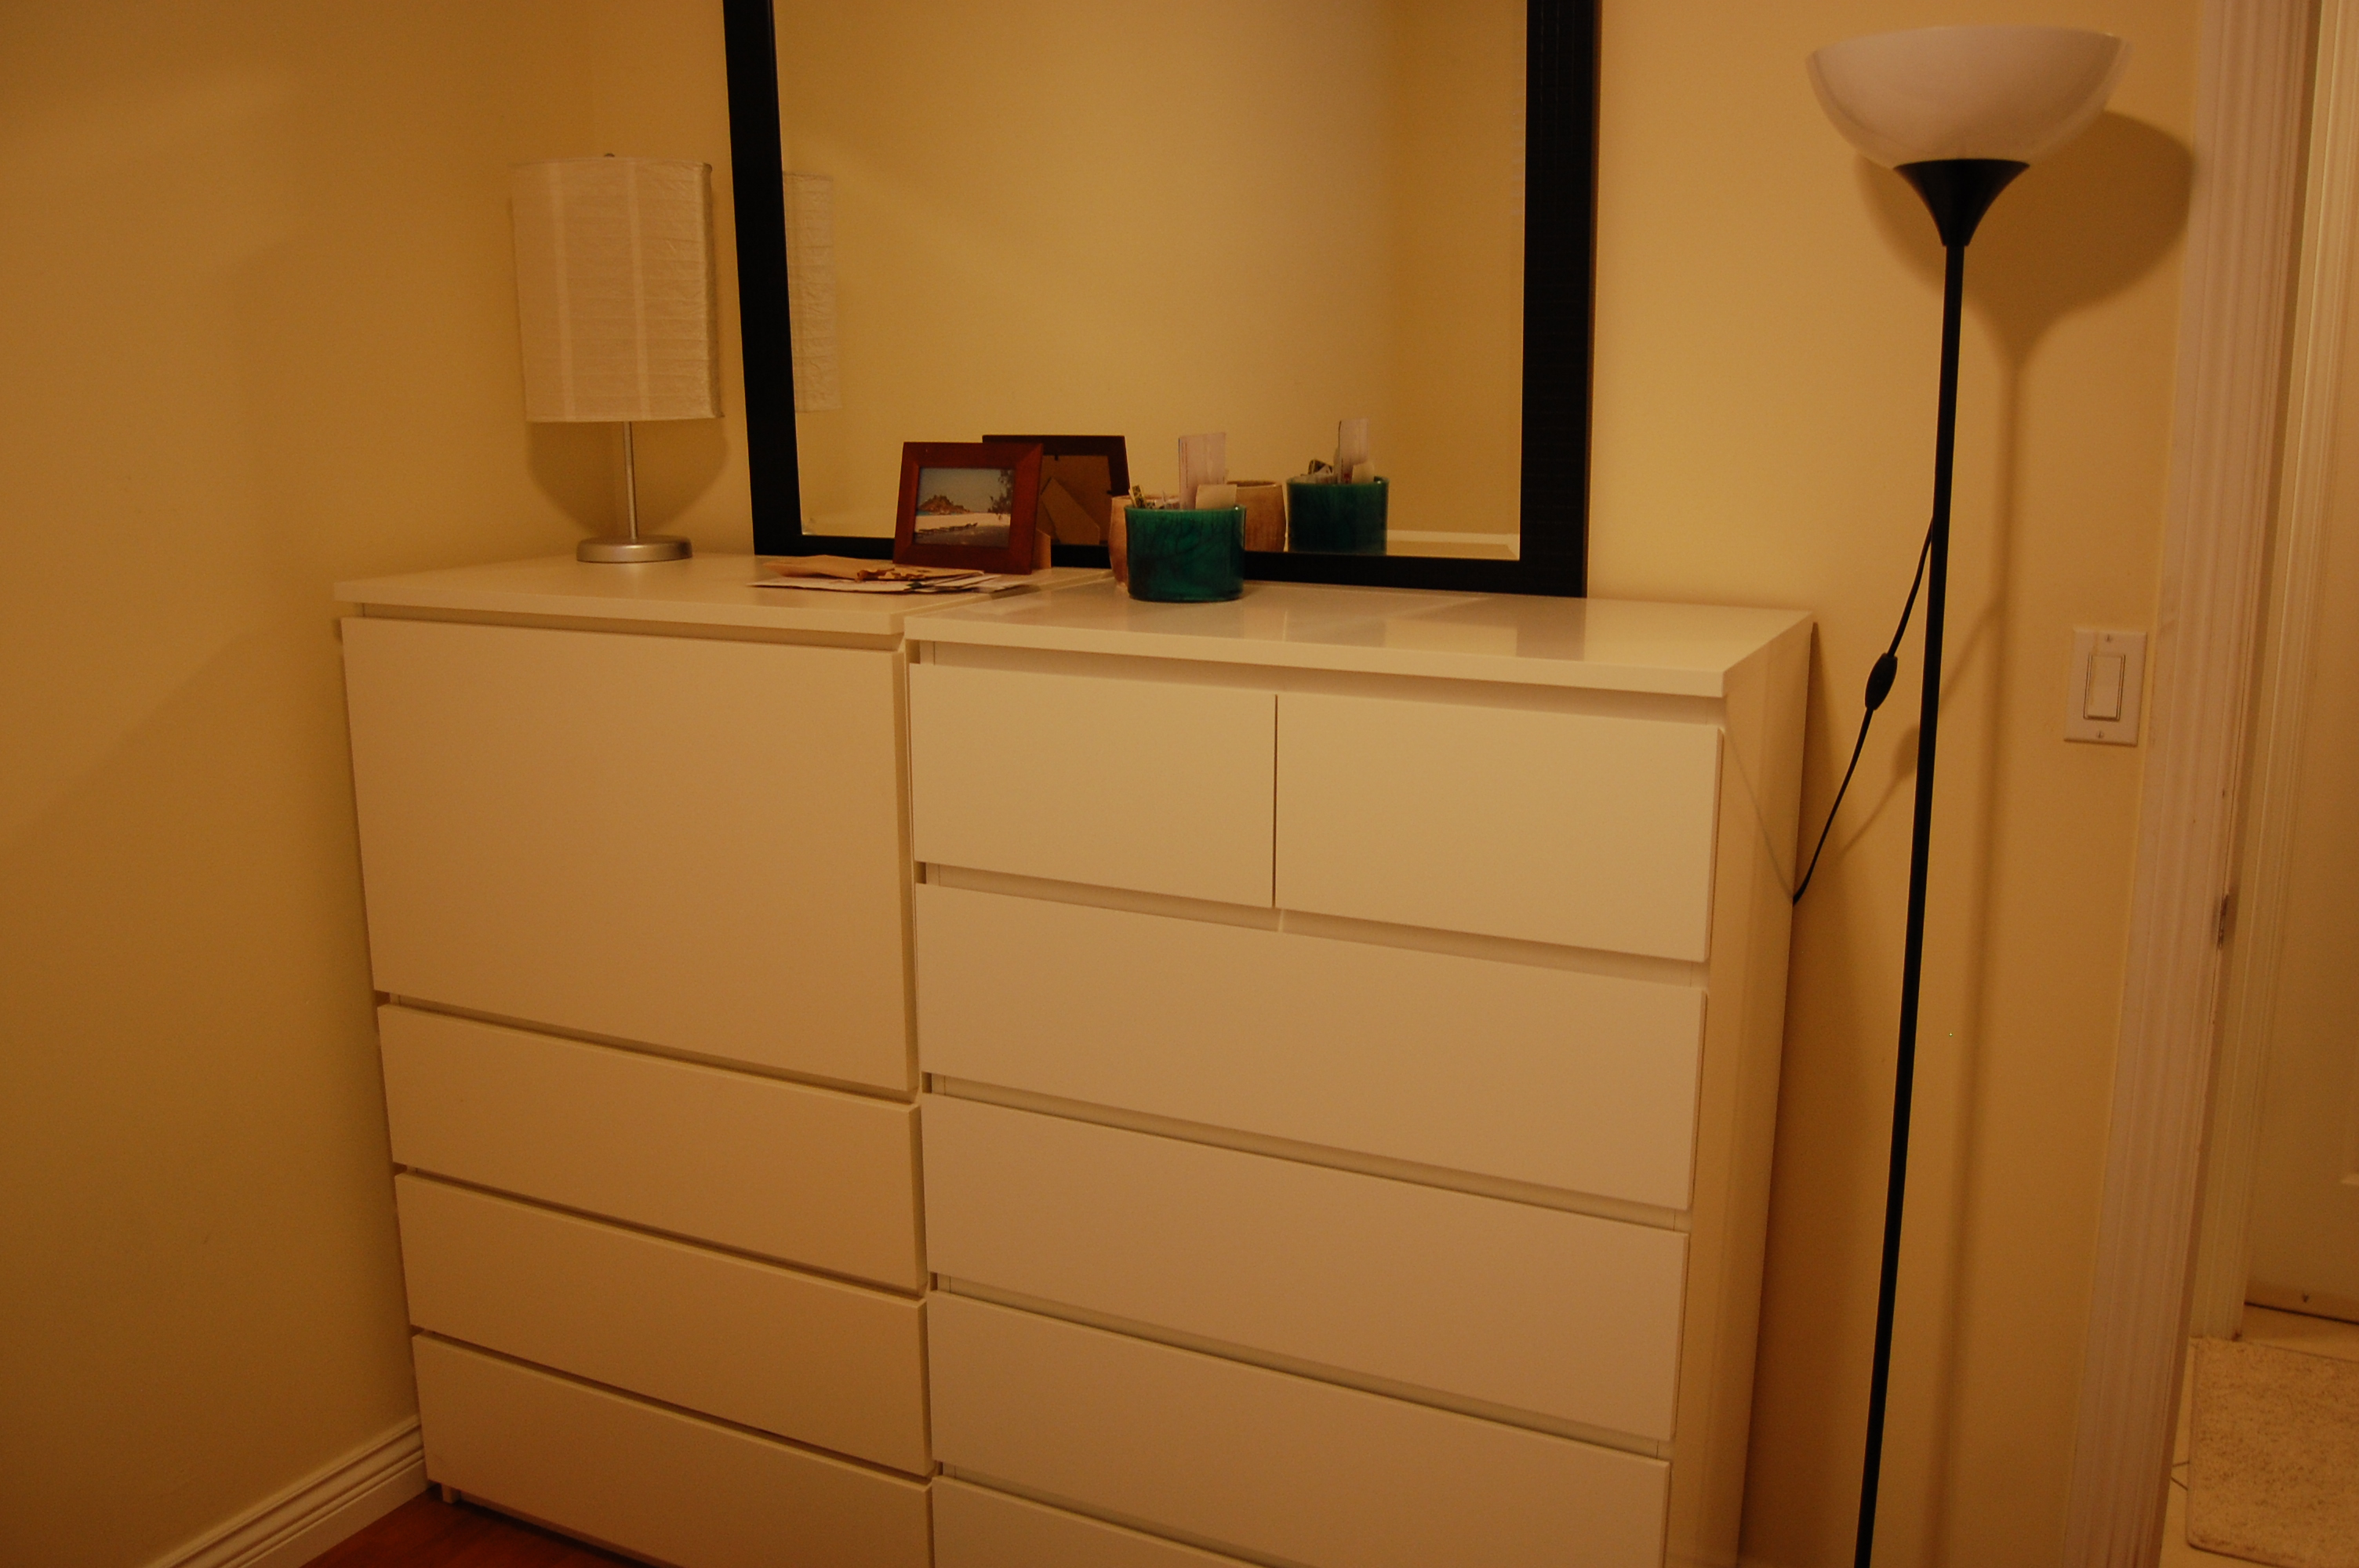 IKEA Malm 6 Drawer Dresser Price